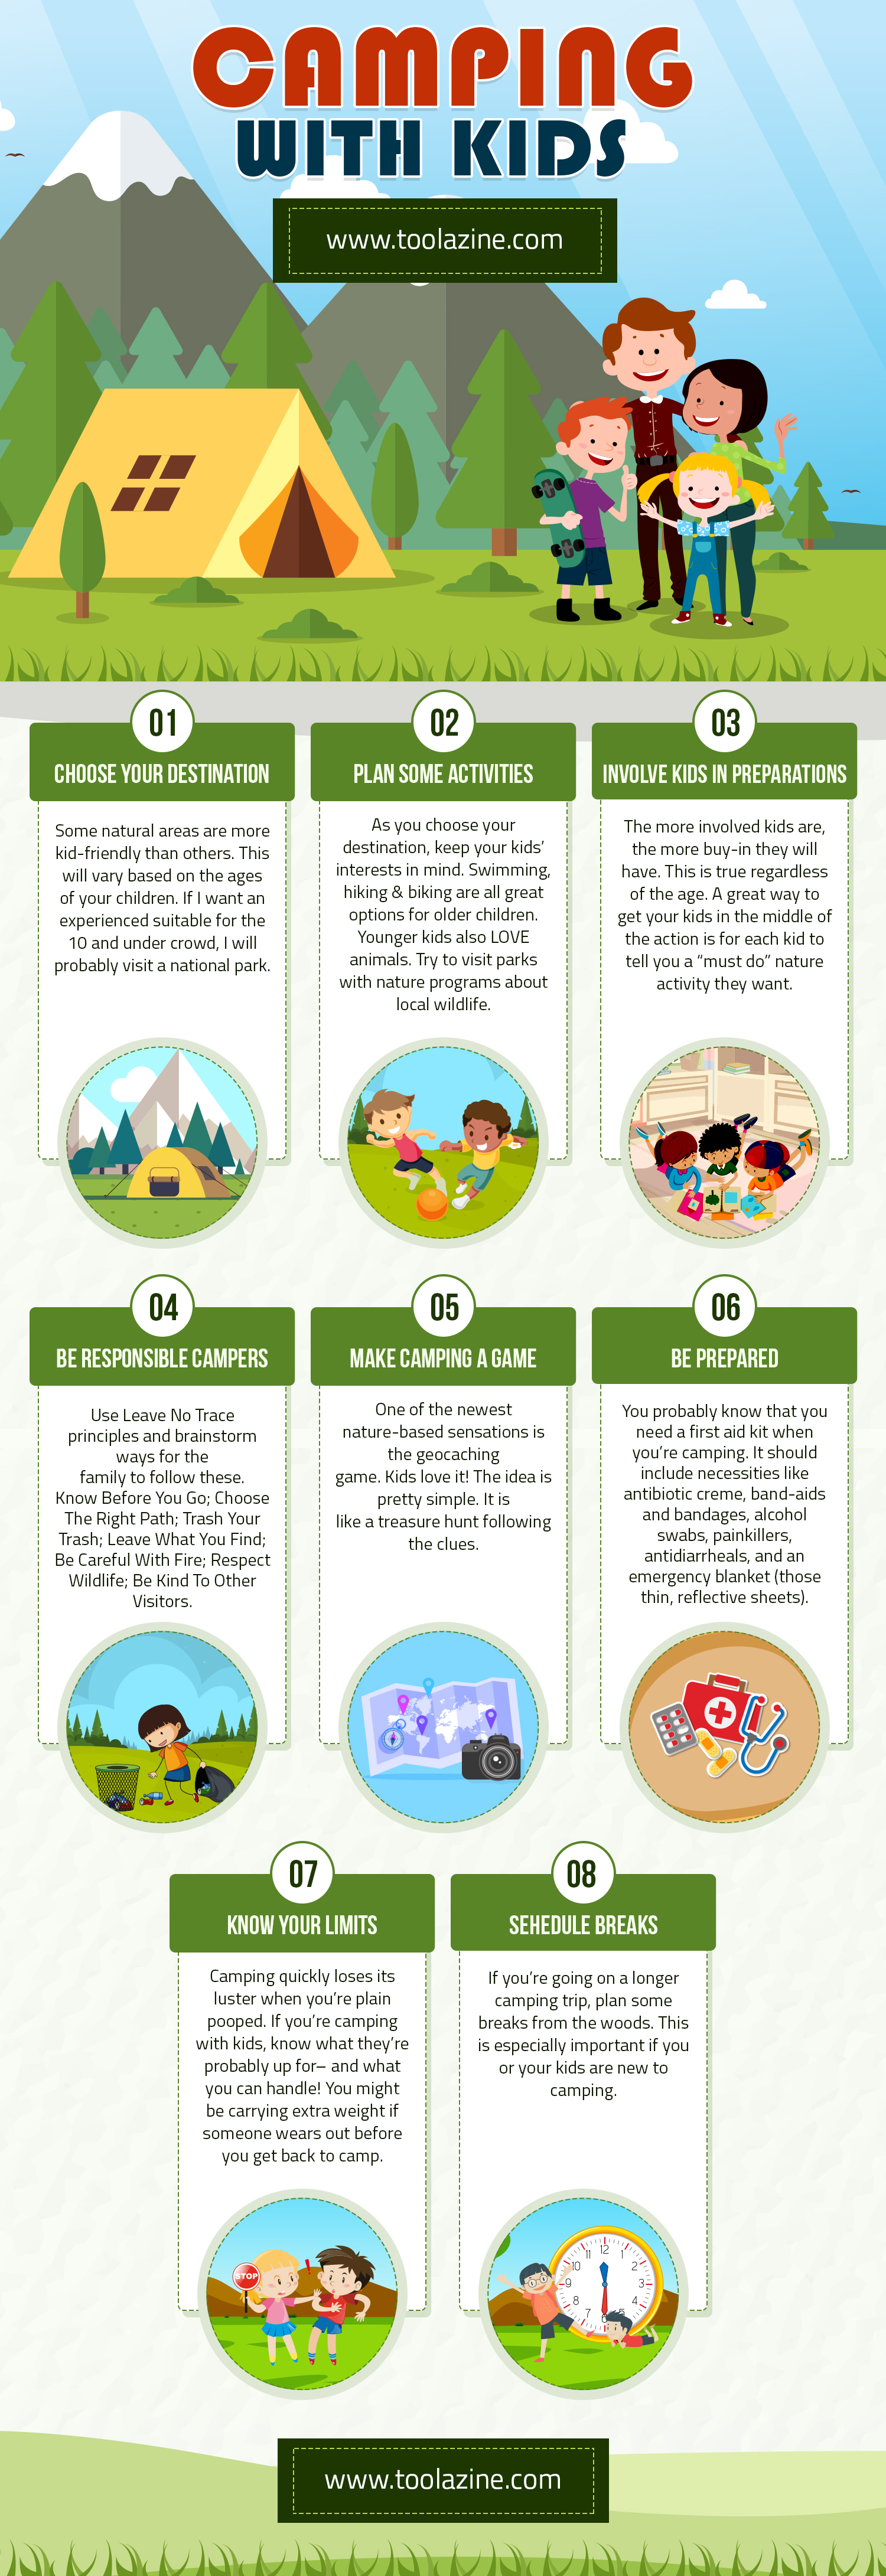 Camping with kids: infants, toddlers, pre-teens & teens | Hacks & tips for families to make your trip safer & easier Infographic